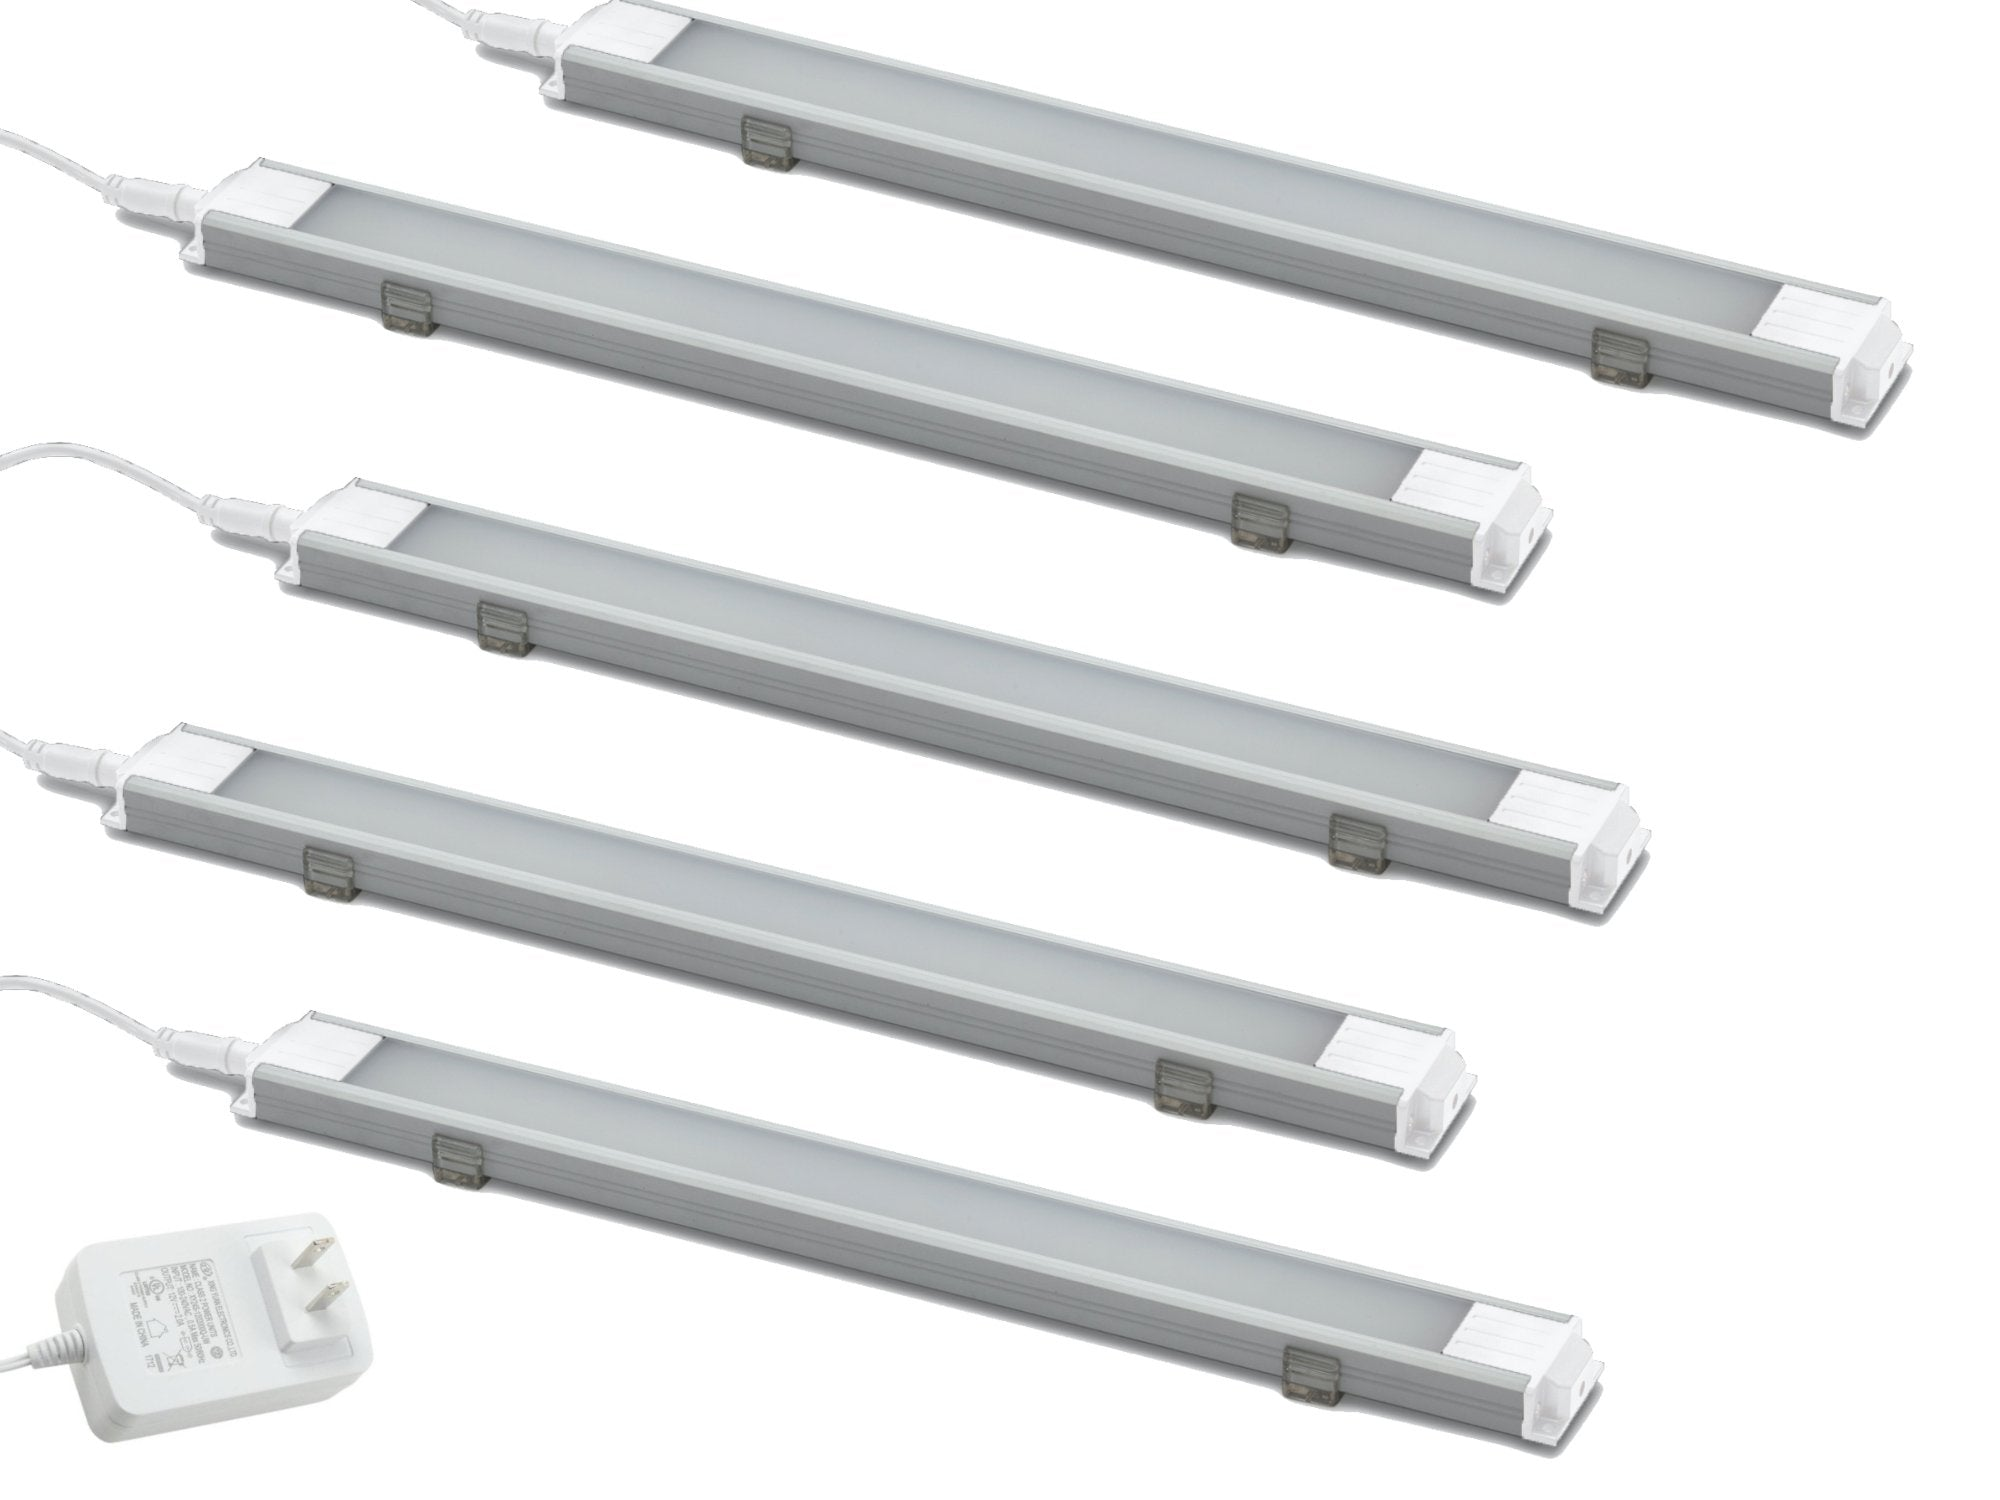 LED Display Lights (2 x Light Adapters, 3 x Light Extensions)